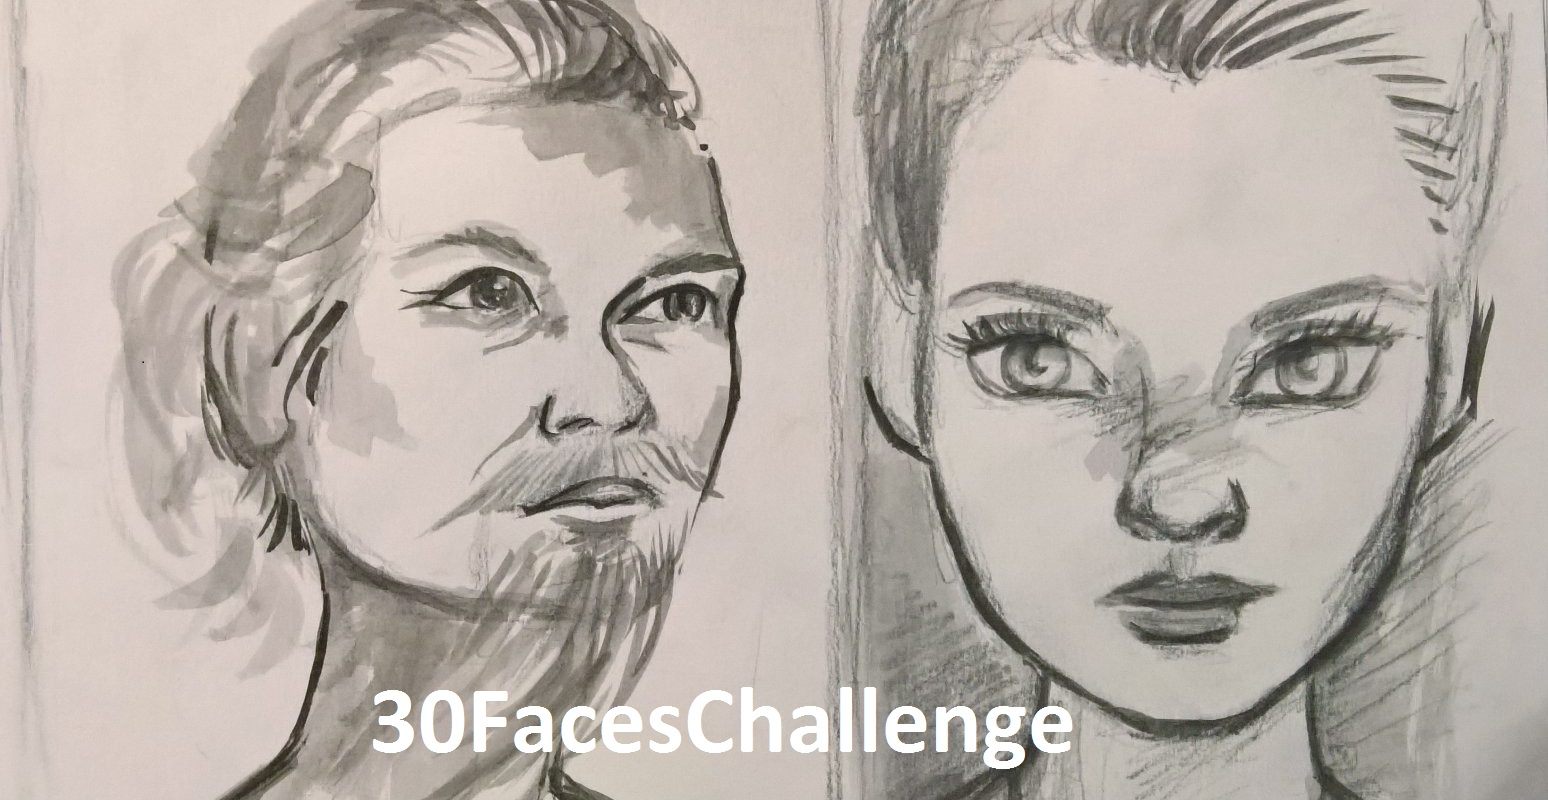 30 Faces Challenge/Sketch